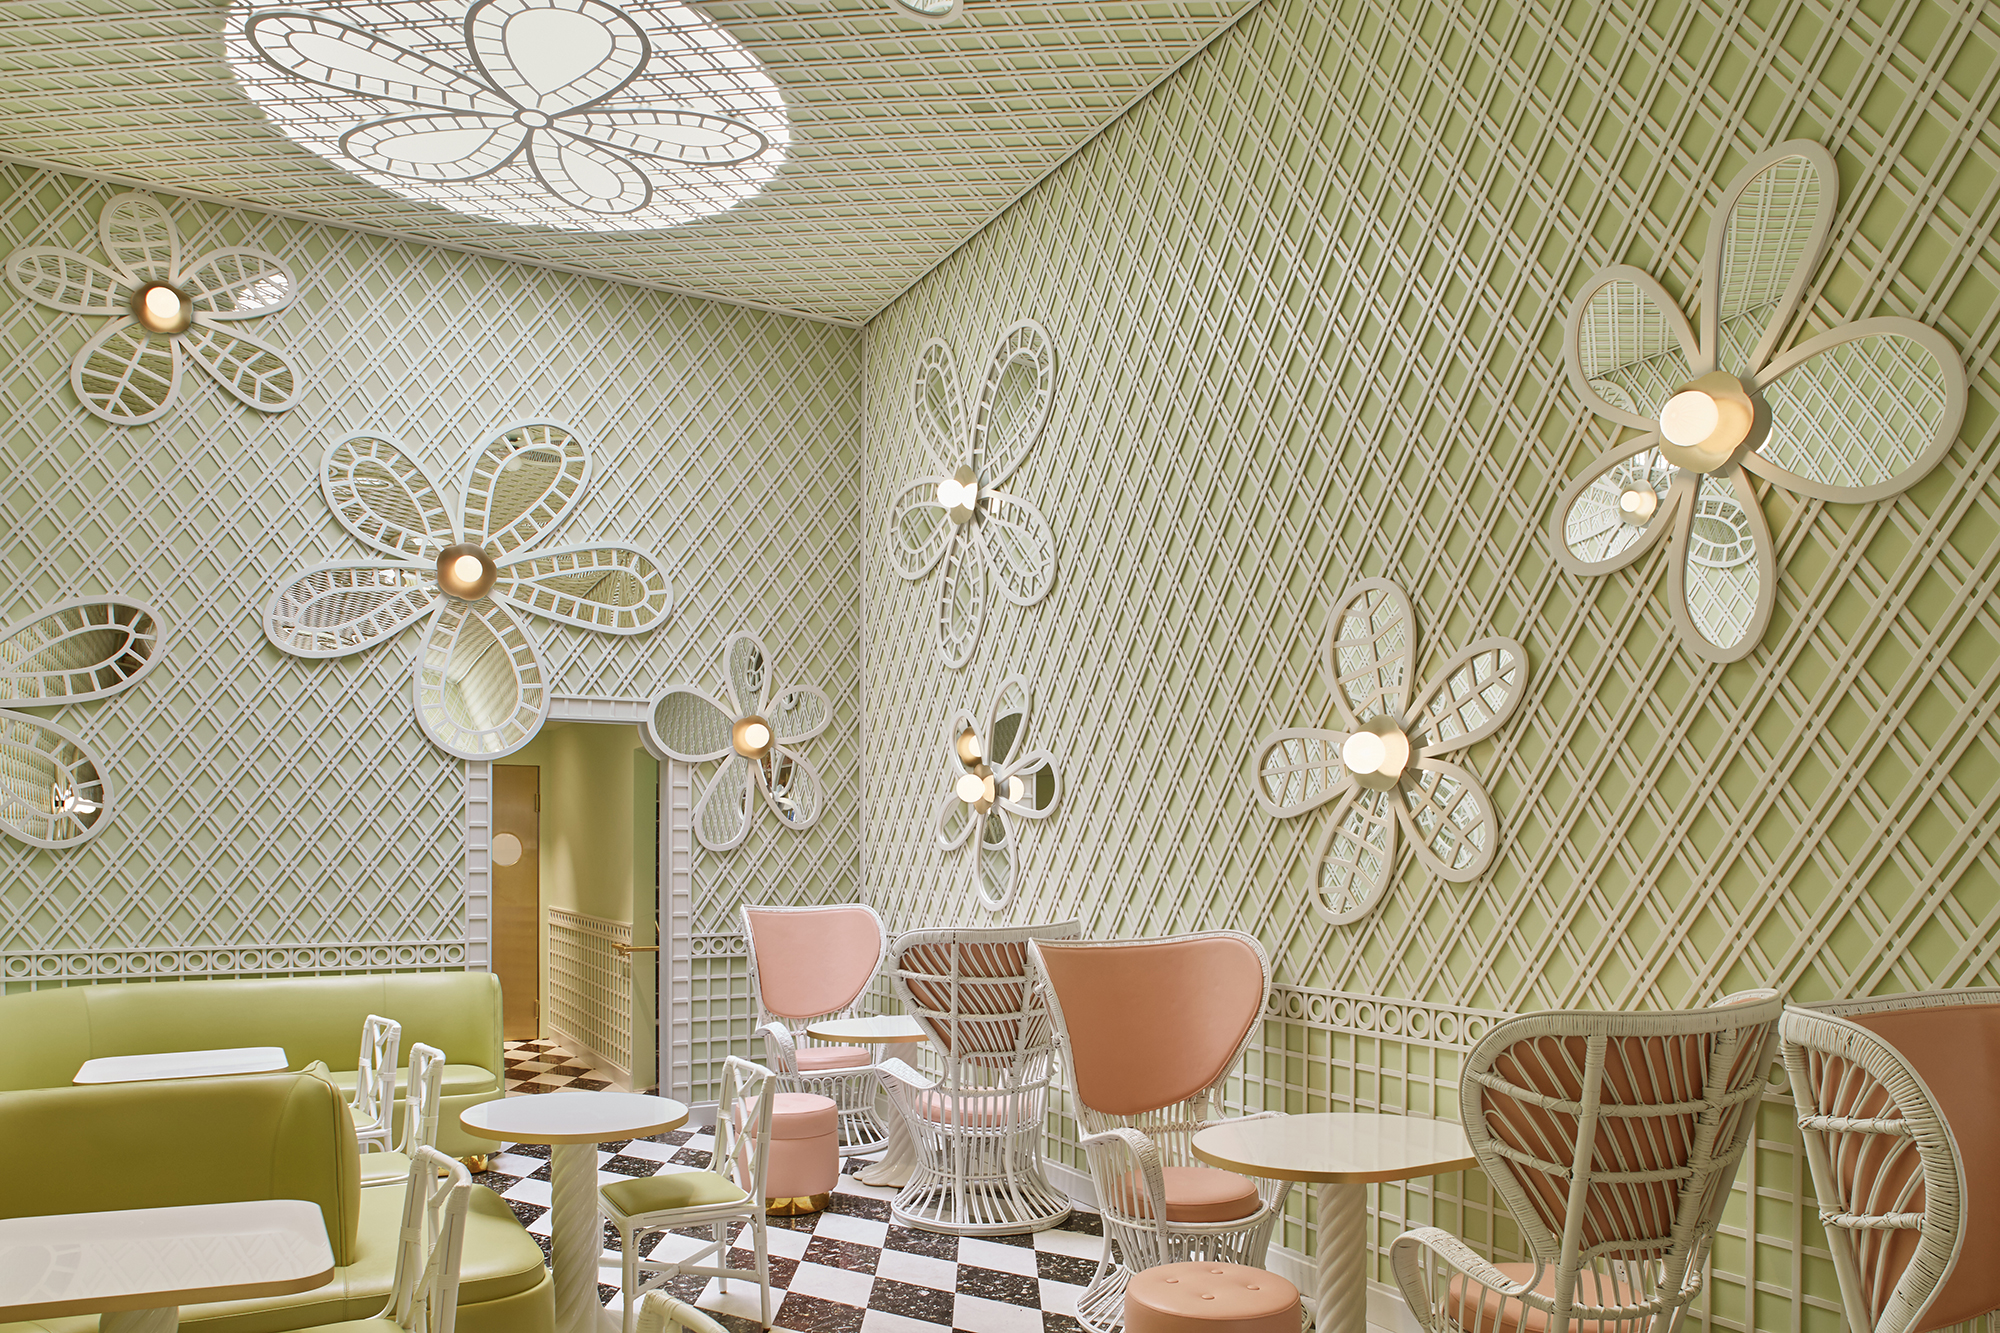 10 Questions With India Mahdavi